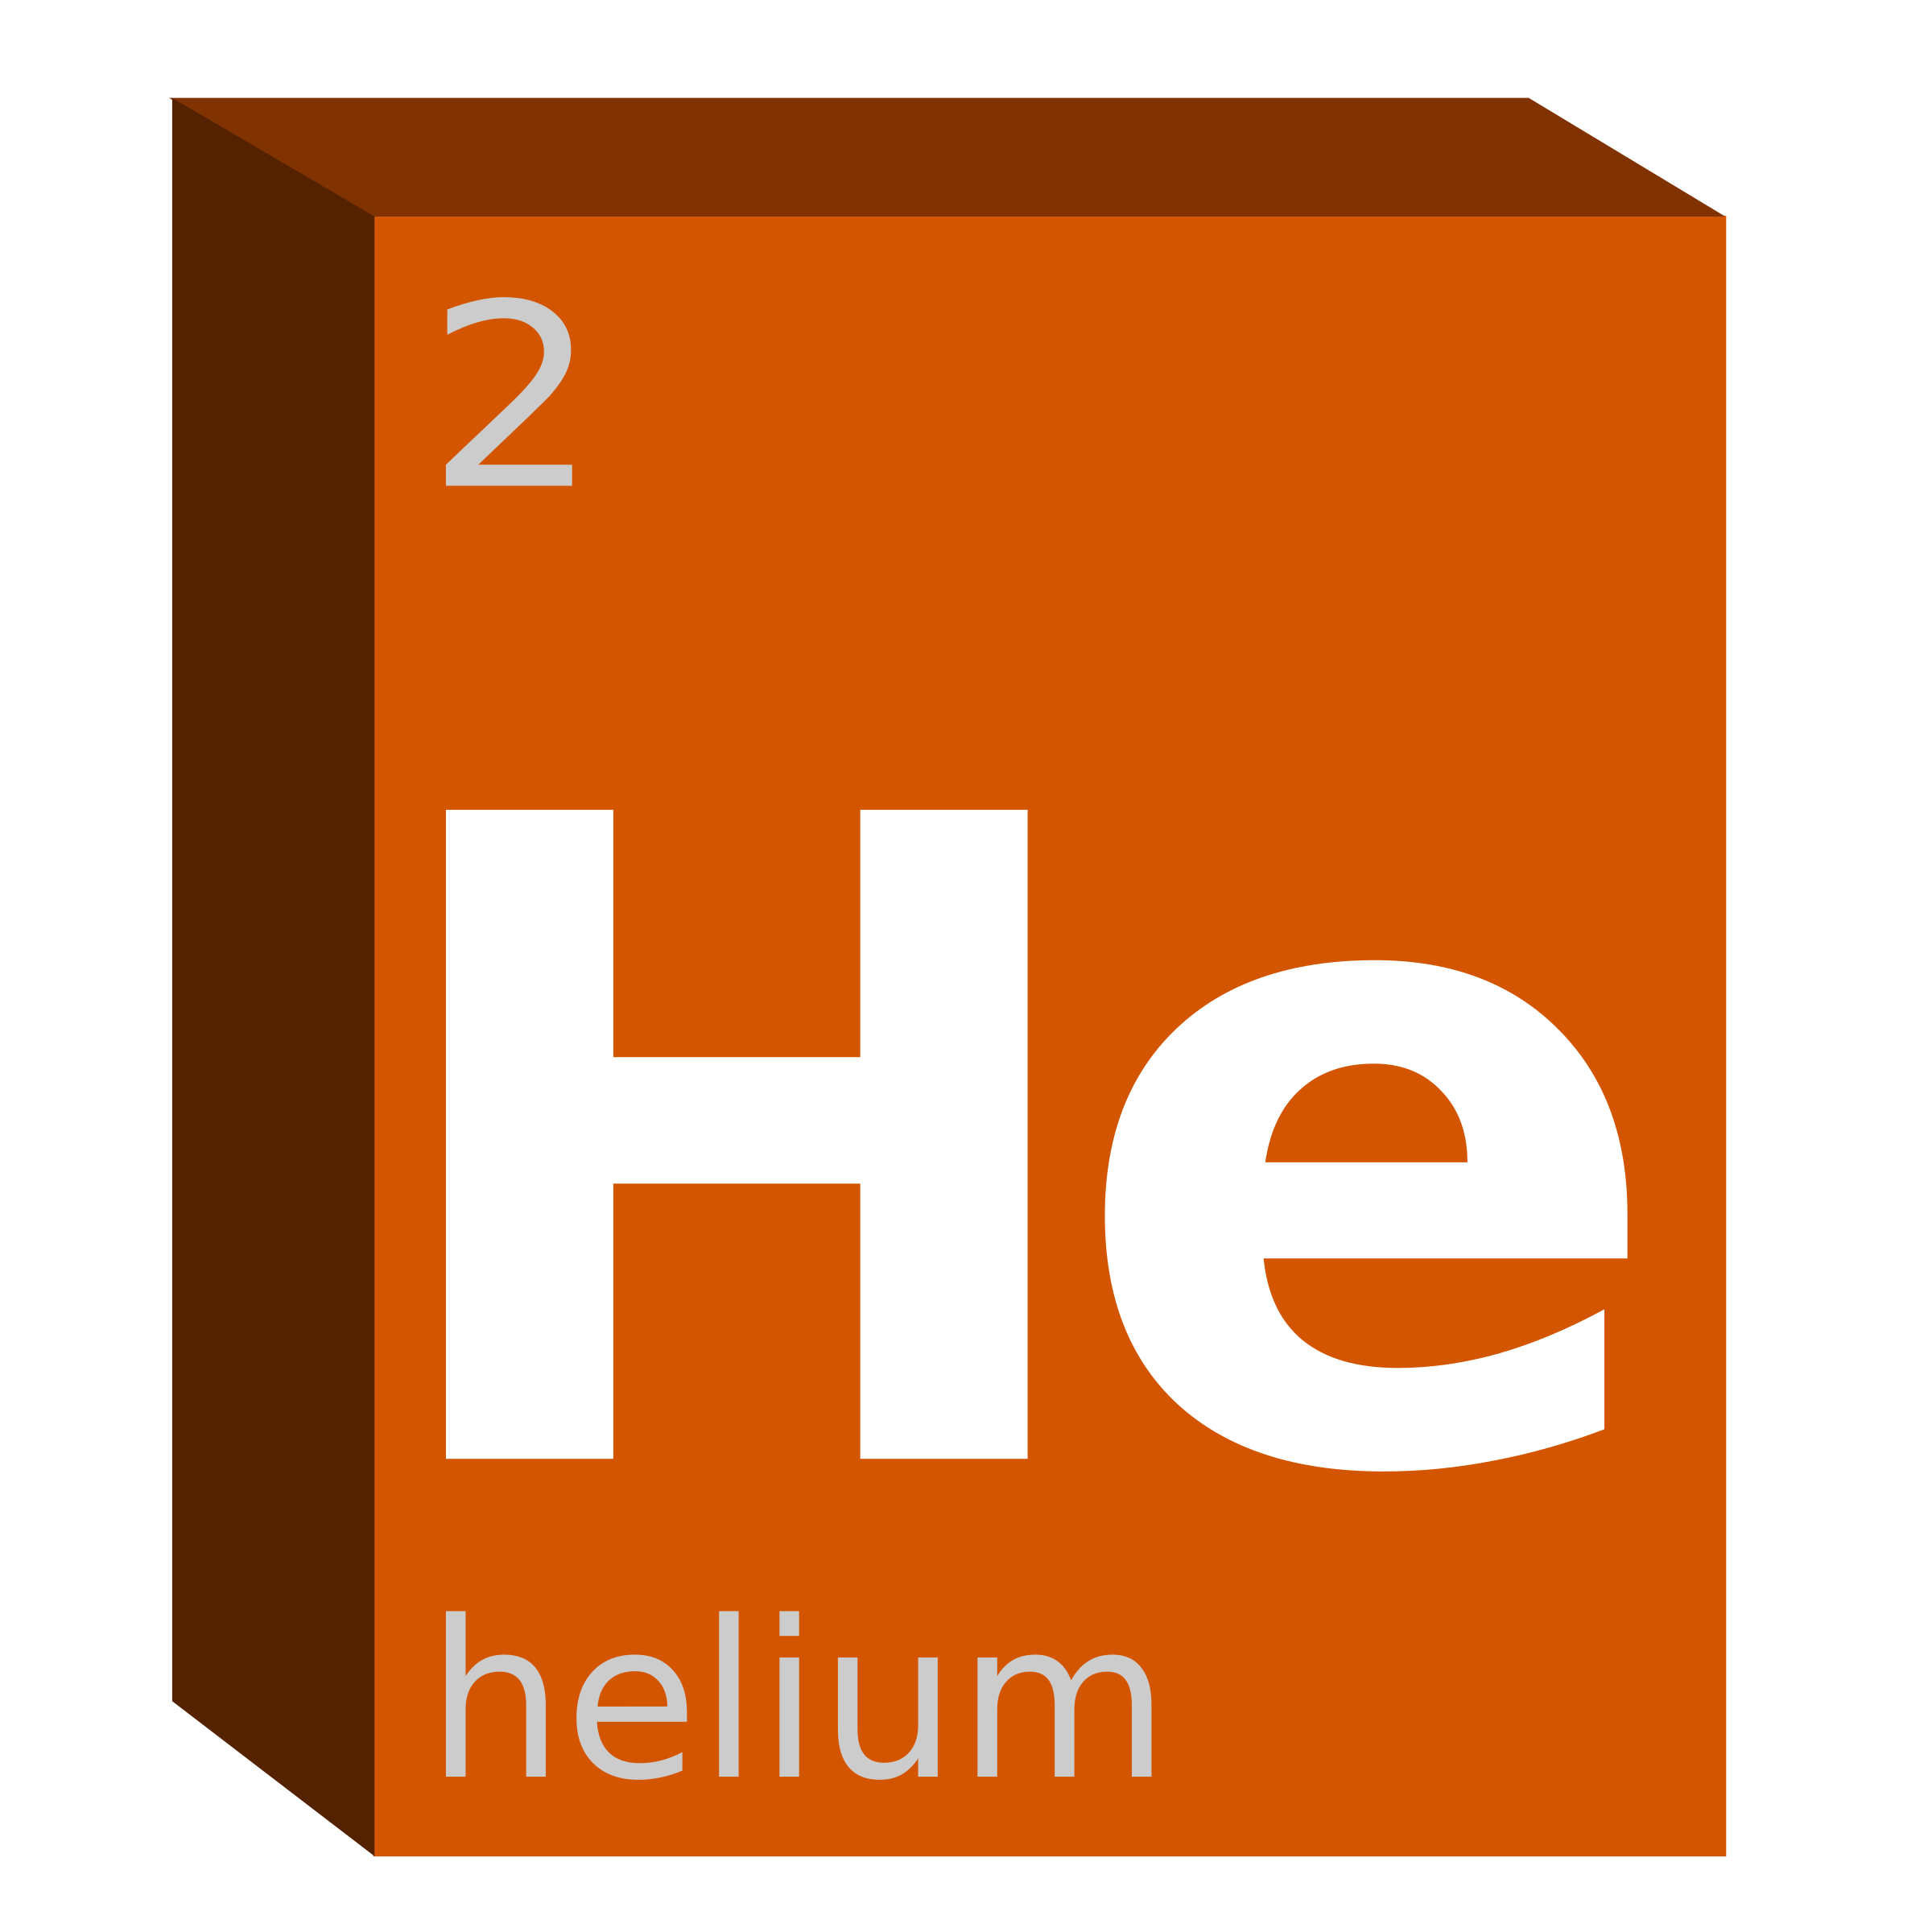 Element clipart mercury Helium Block Helium Chemistry (He)